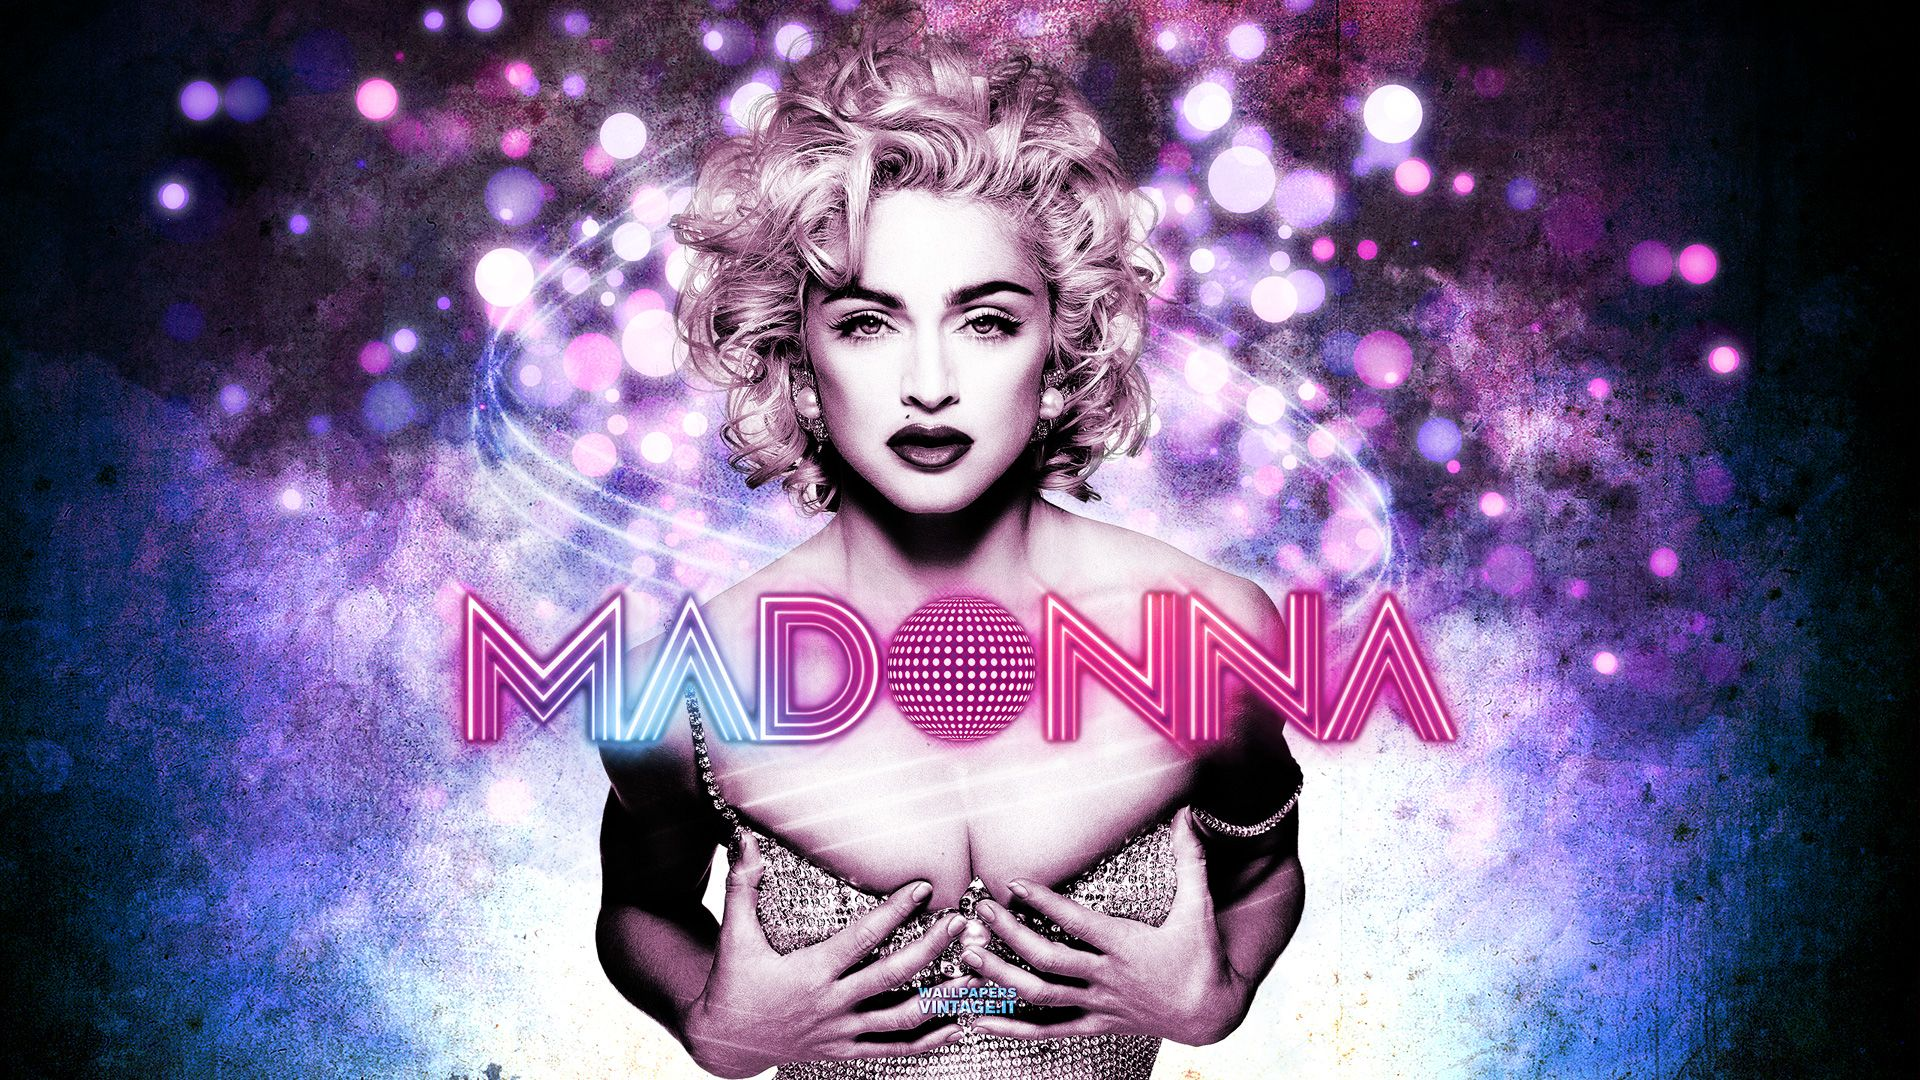 Madonna Download Wallpaper